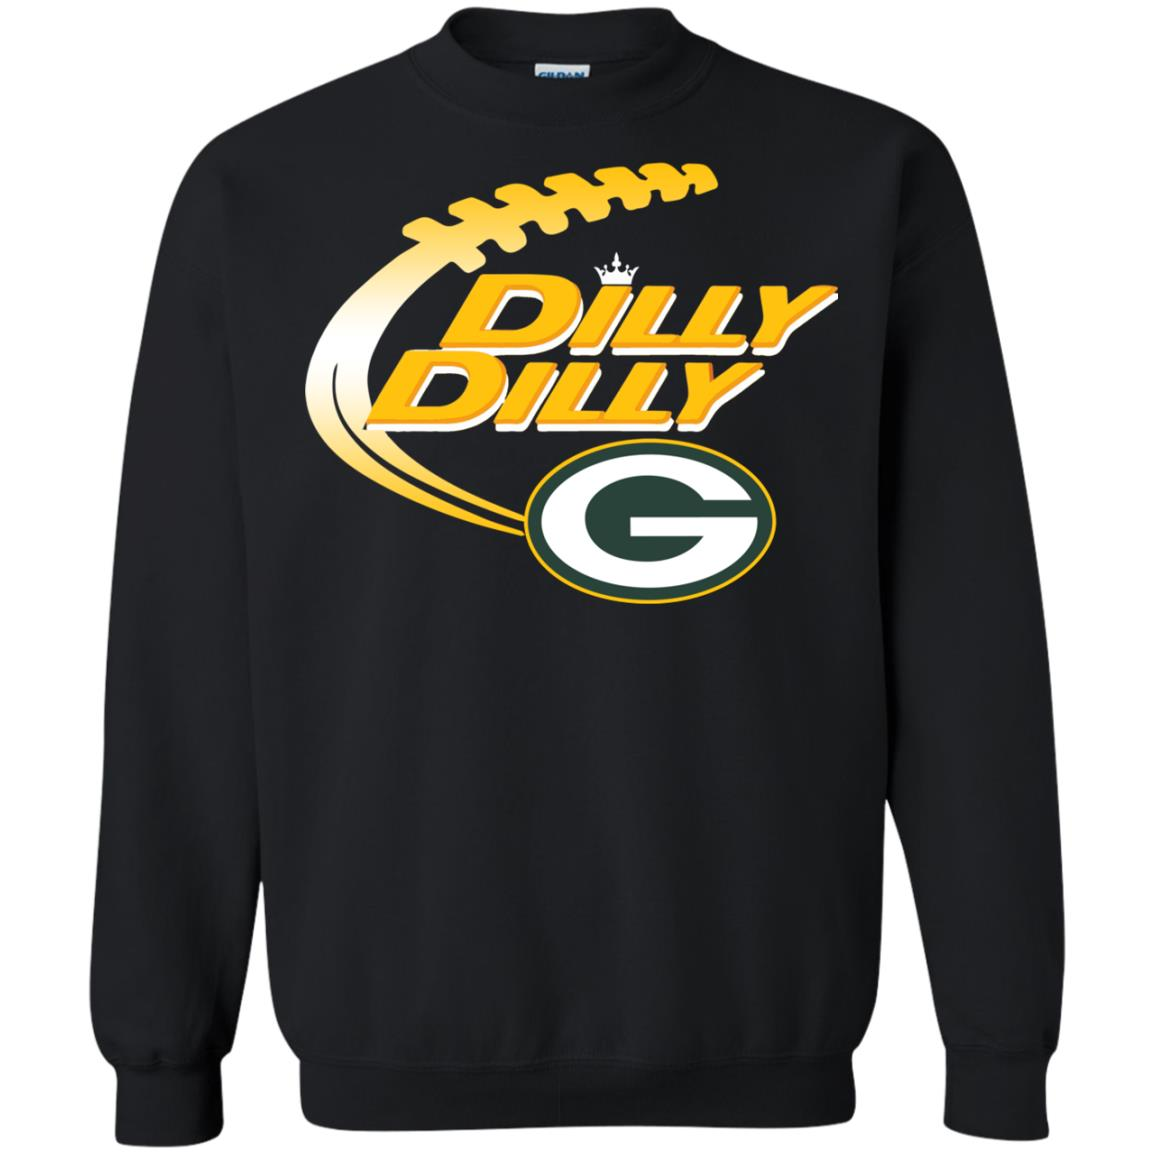 Dilly Dilly Green Bay Packers Shirt   Sweatshirts c51ca1cccb6e